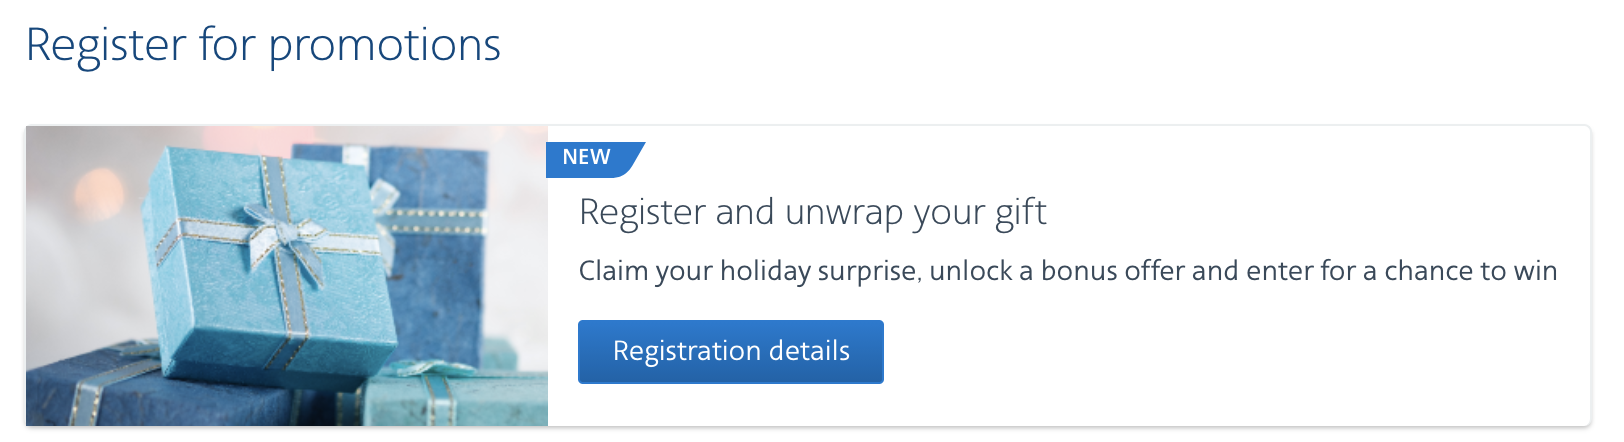 American airlines gift